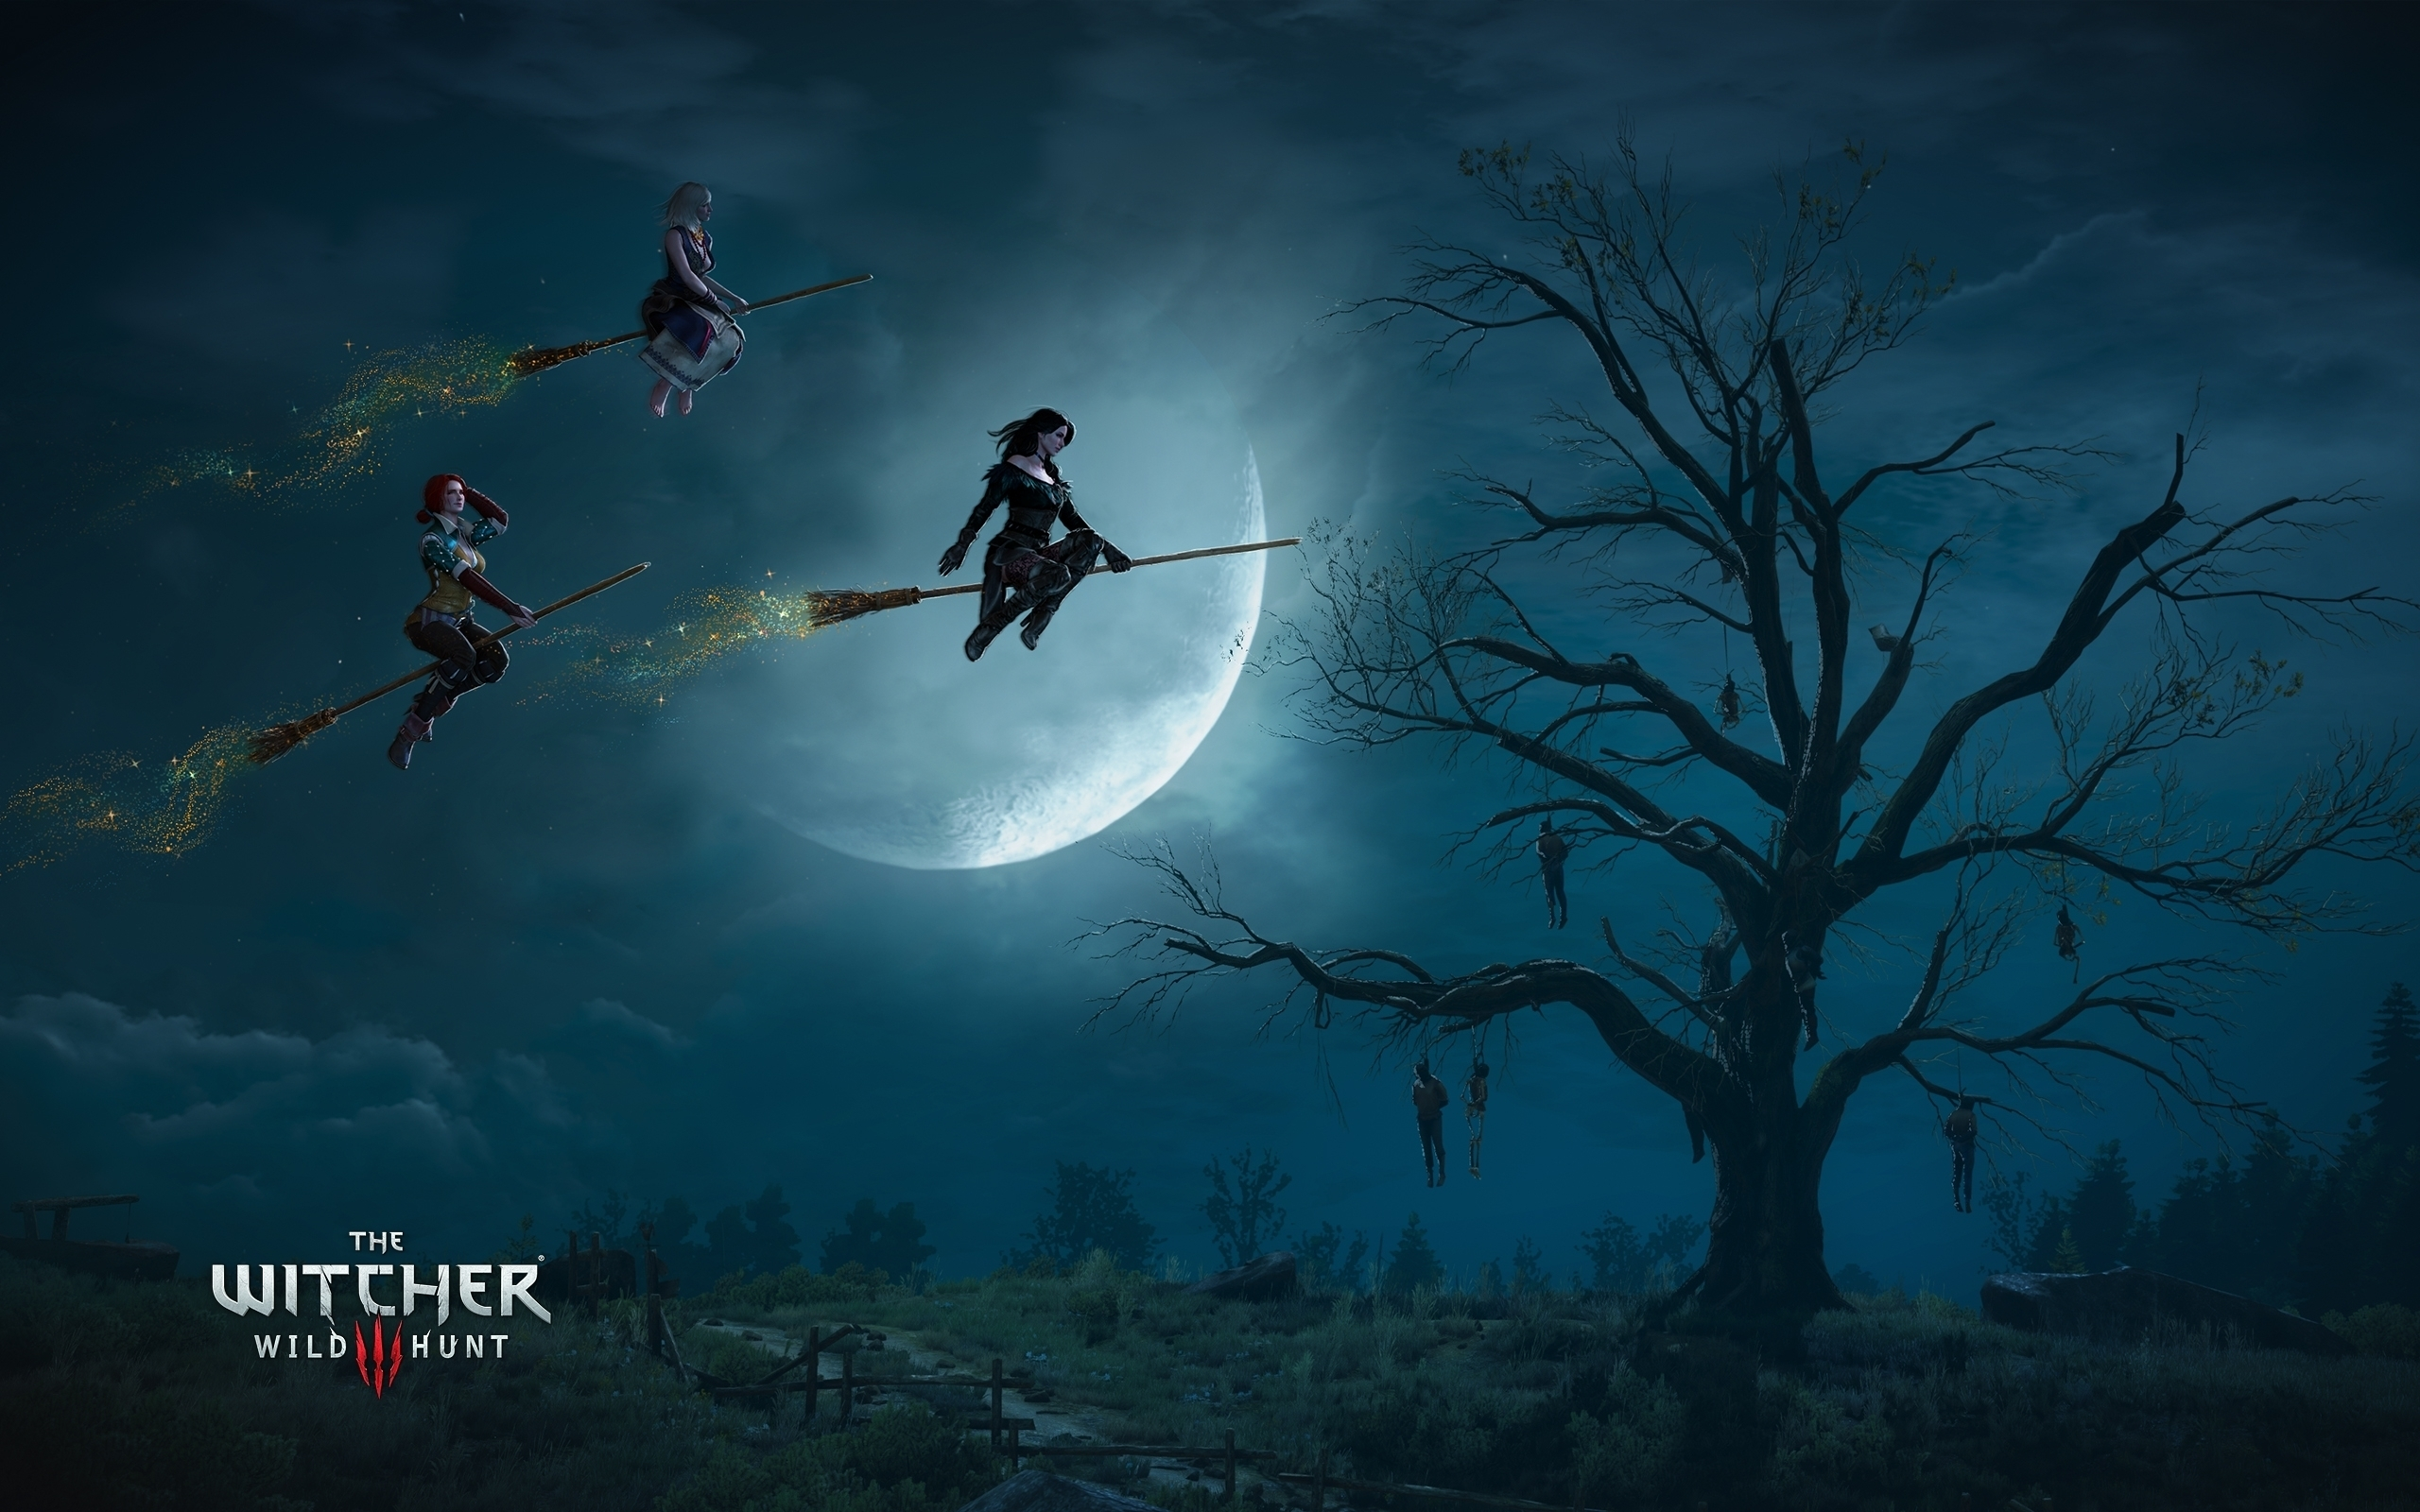 The Witcher Wild Hunt Witches wallpaper